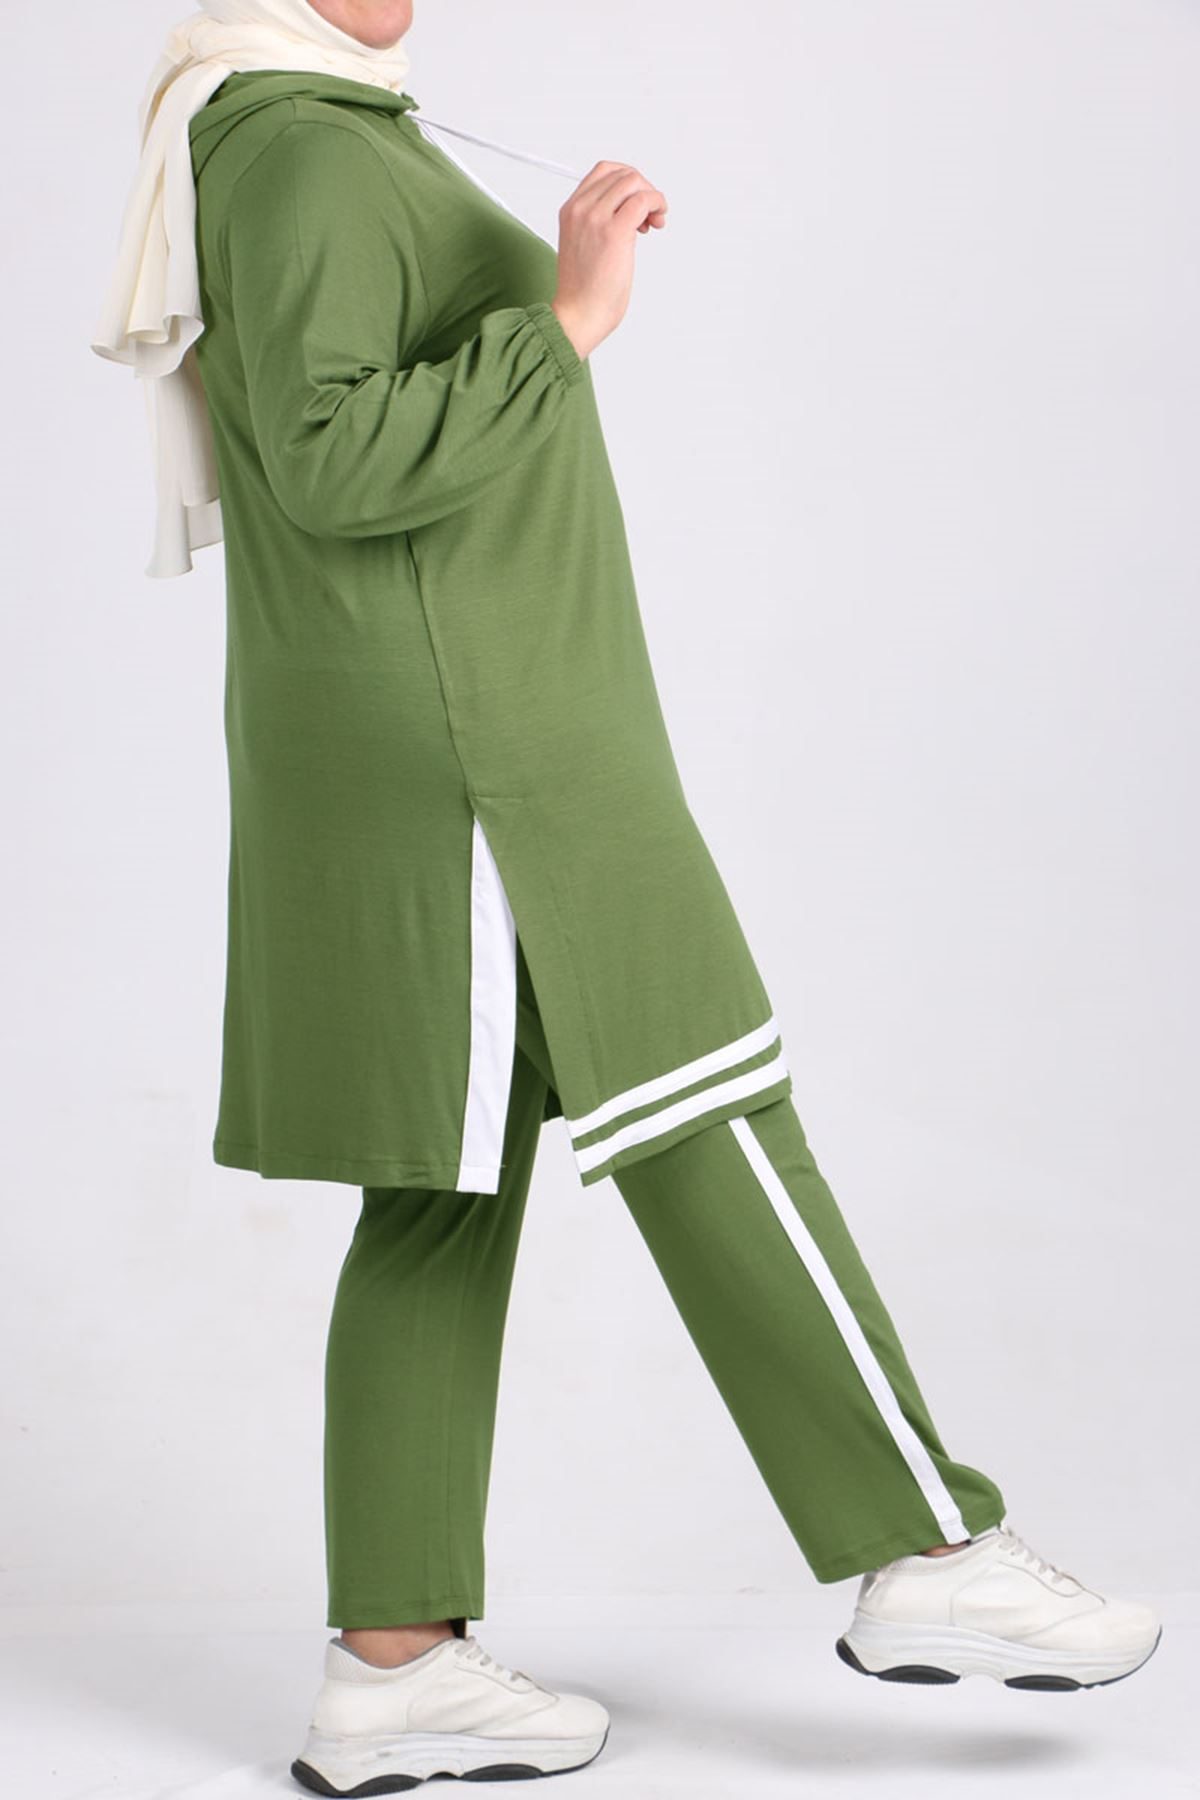 7689 Plus Size Two Piece Set with Tunic and Pants- Green